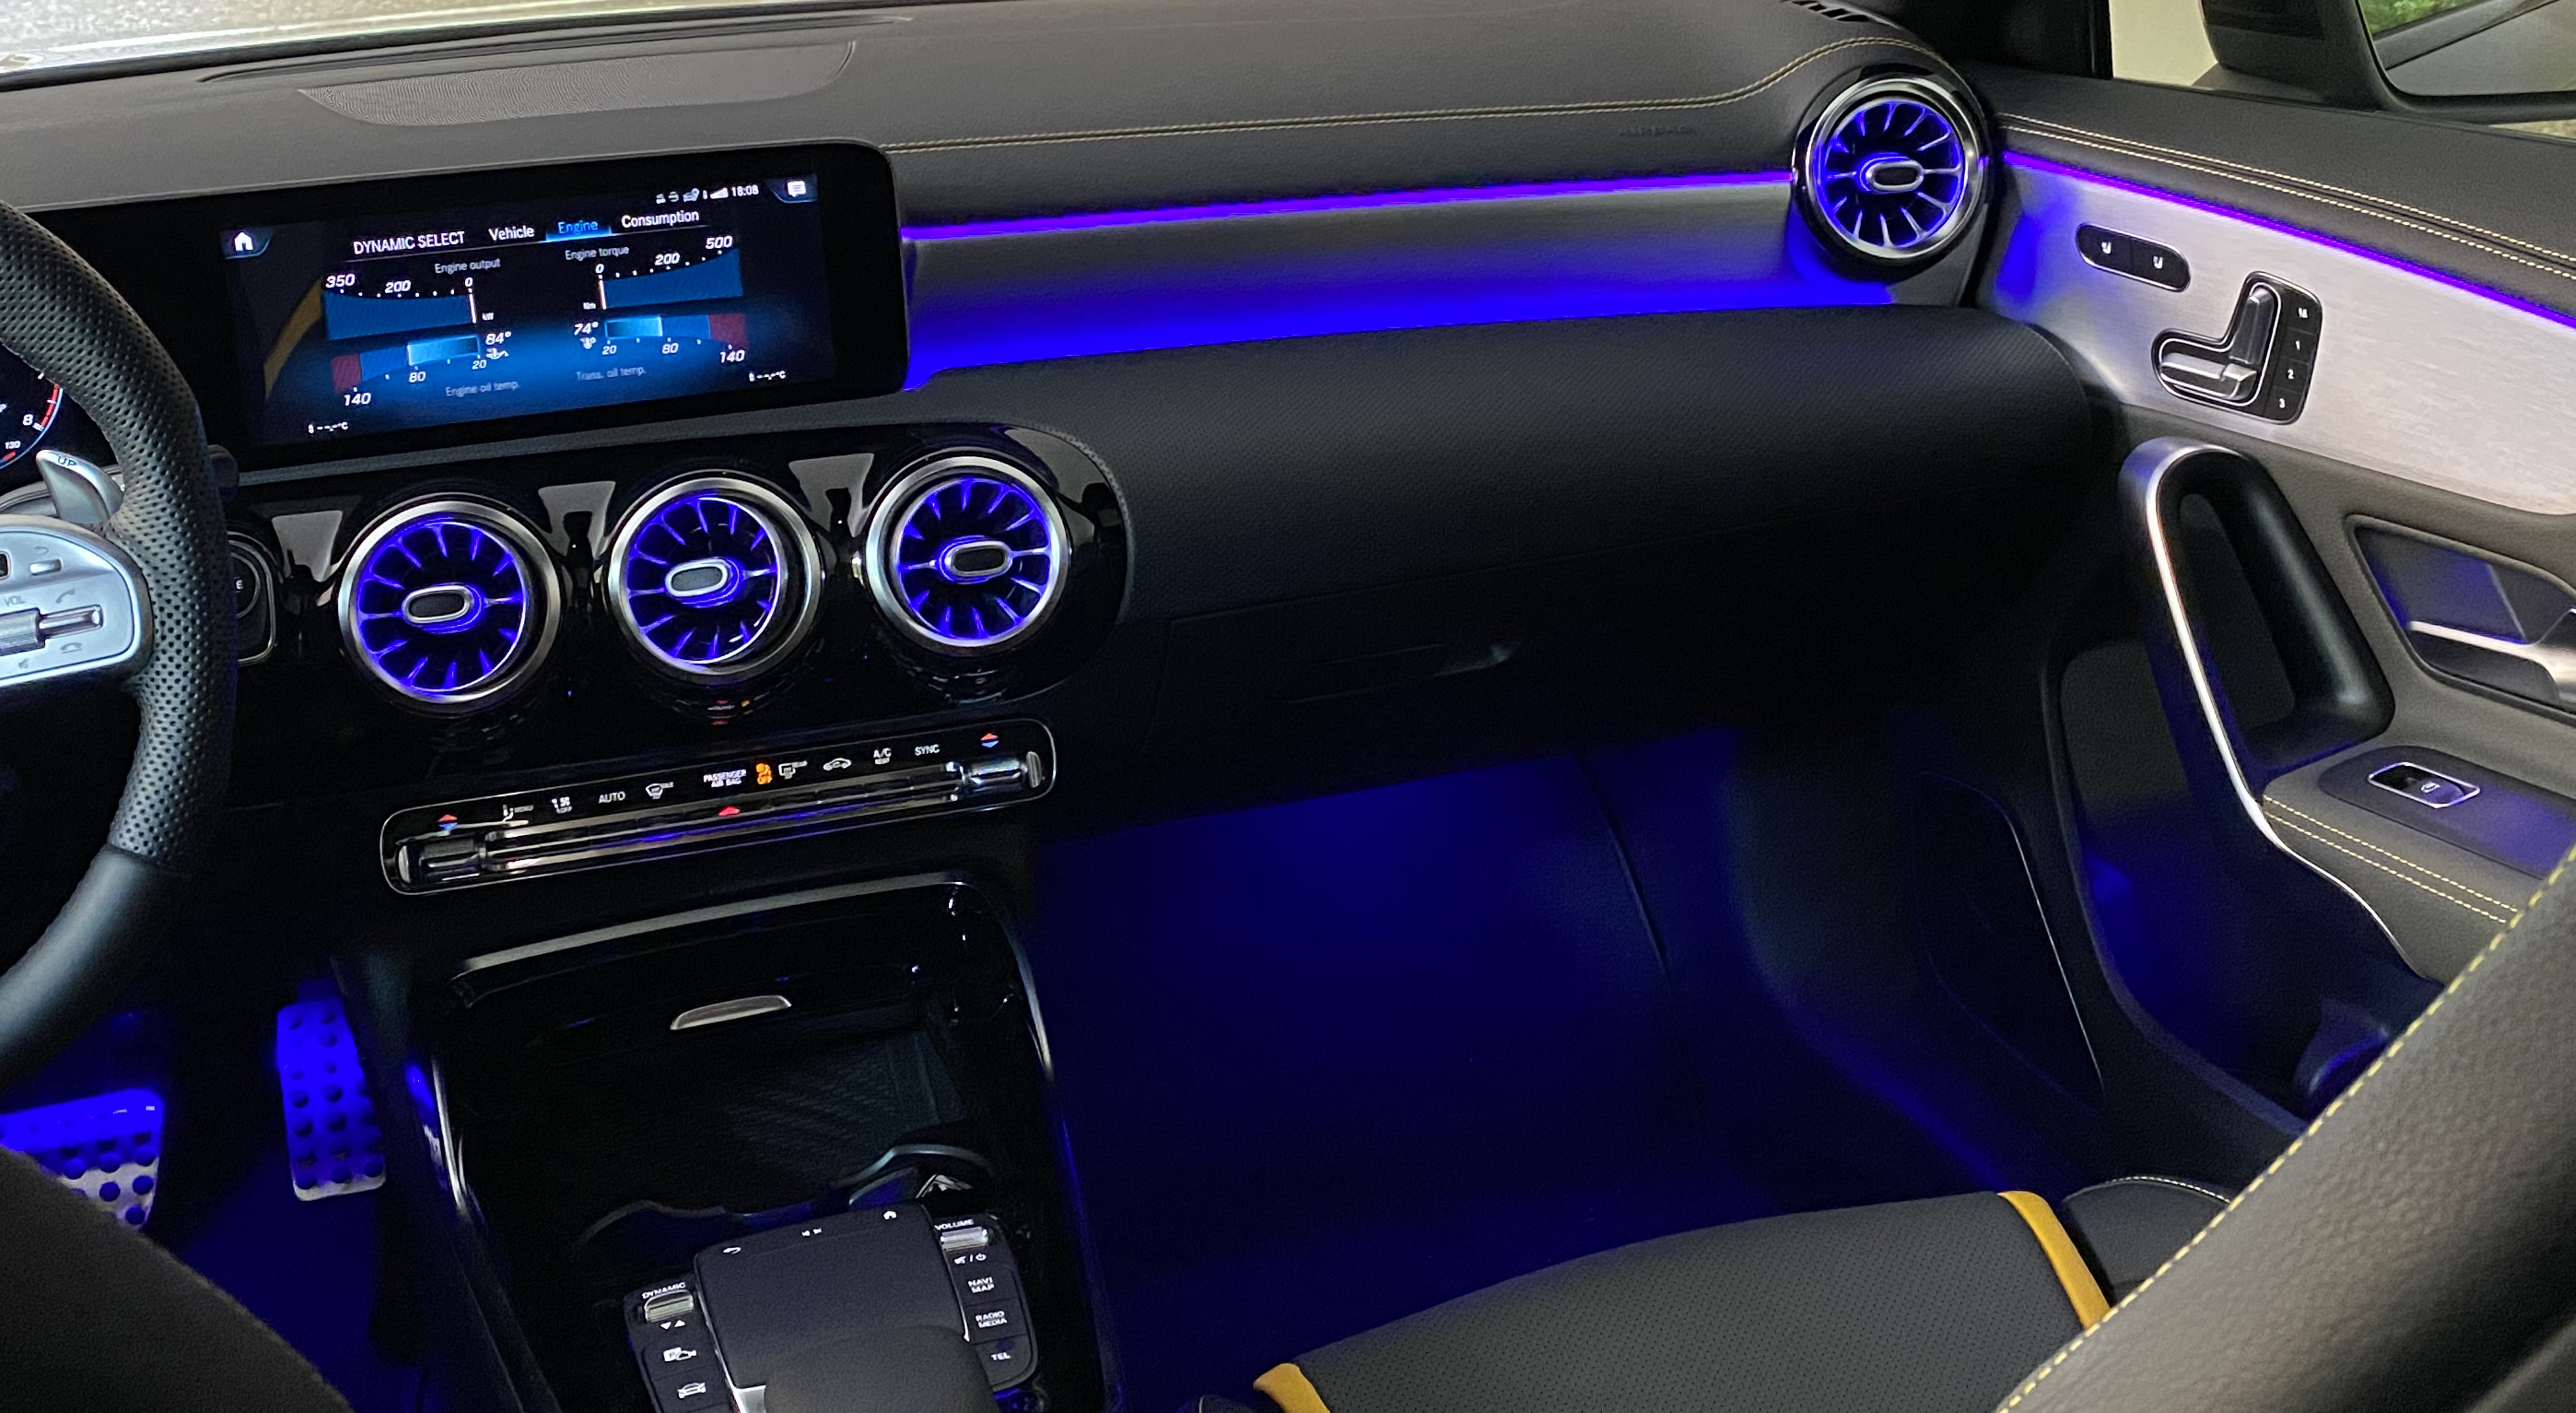 a45s_interior_front02.jpg